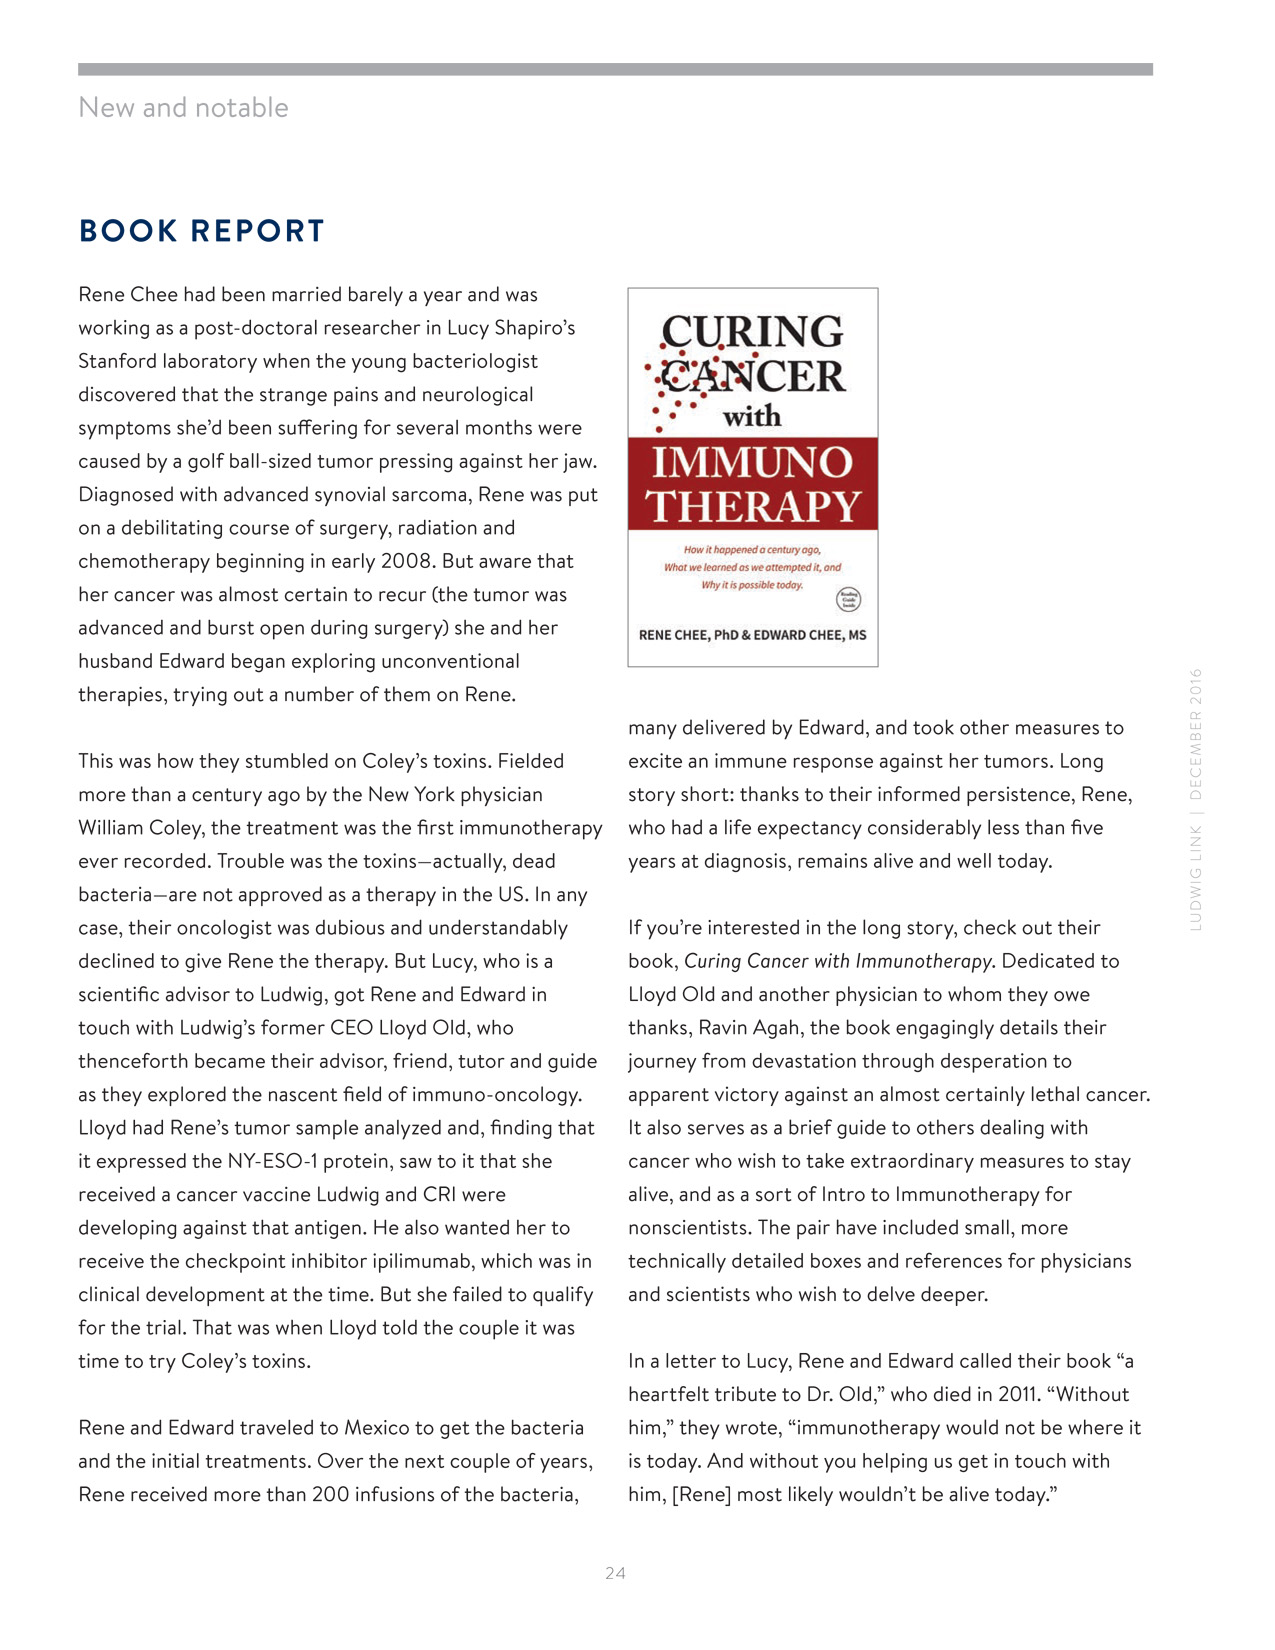 Curing cancer with immunotherapy book report Ludwig Link Newsletter